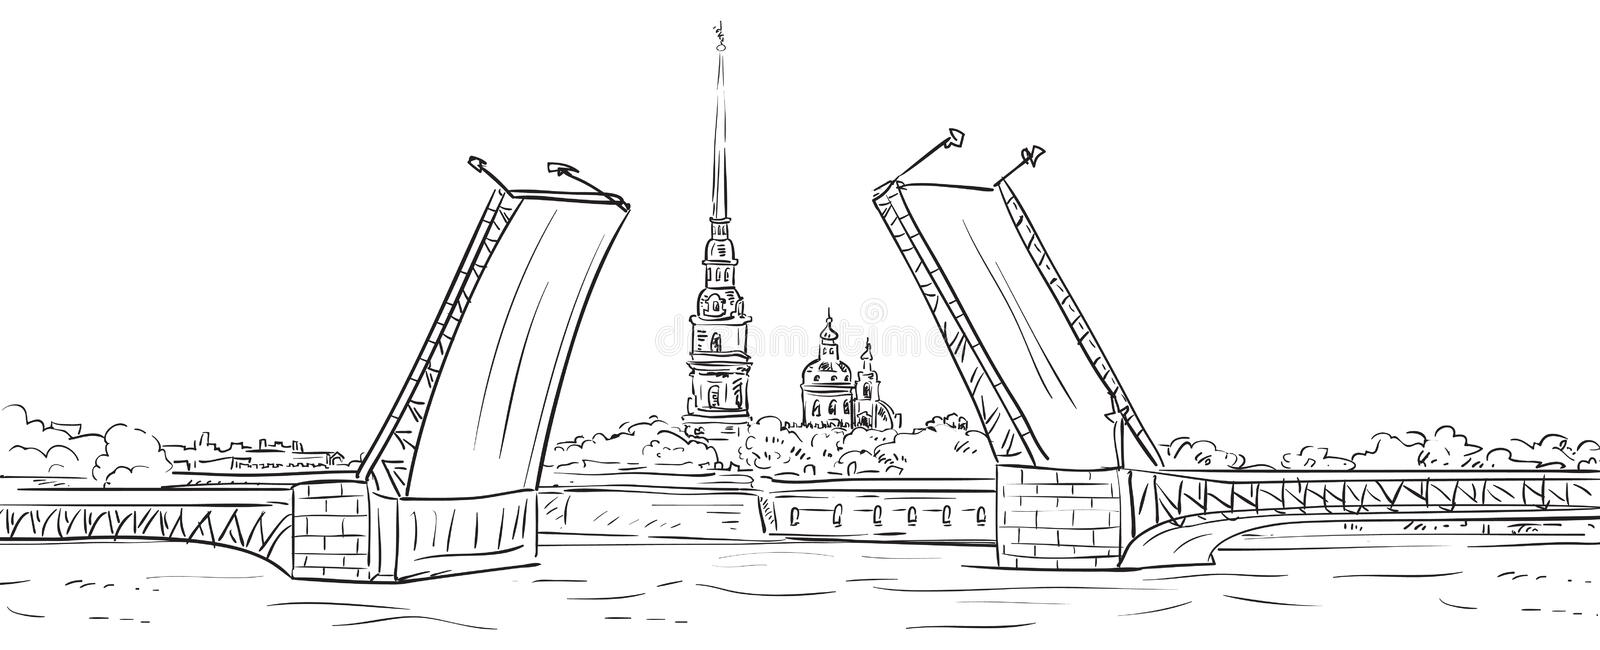 Peter and Paul Fortress. Drawbridge, symbol of Saint Petersburg, Russia. Hand drawn illustration. Isolated background royalty free illustration